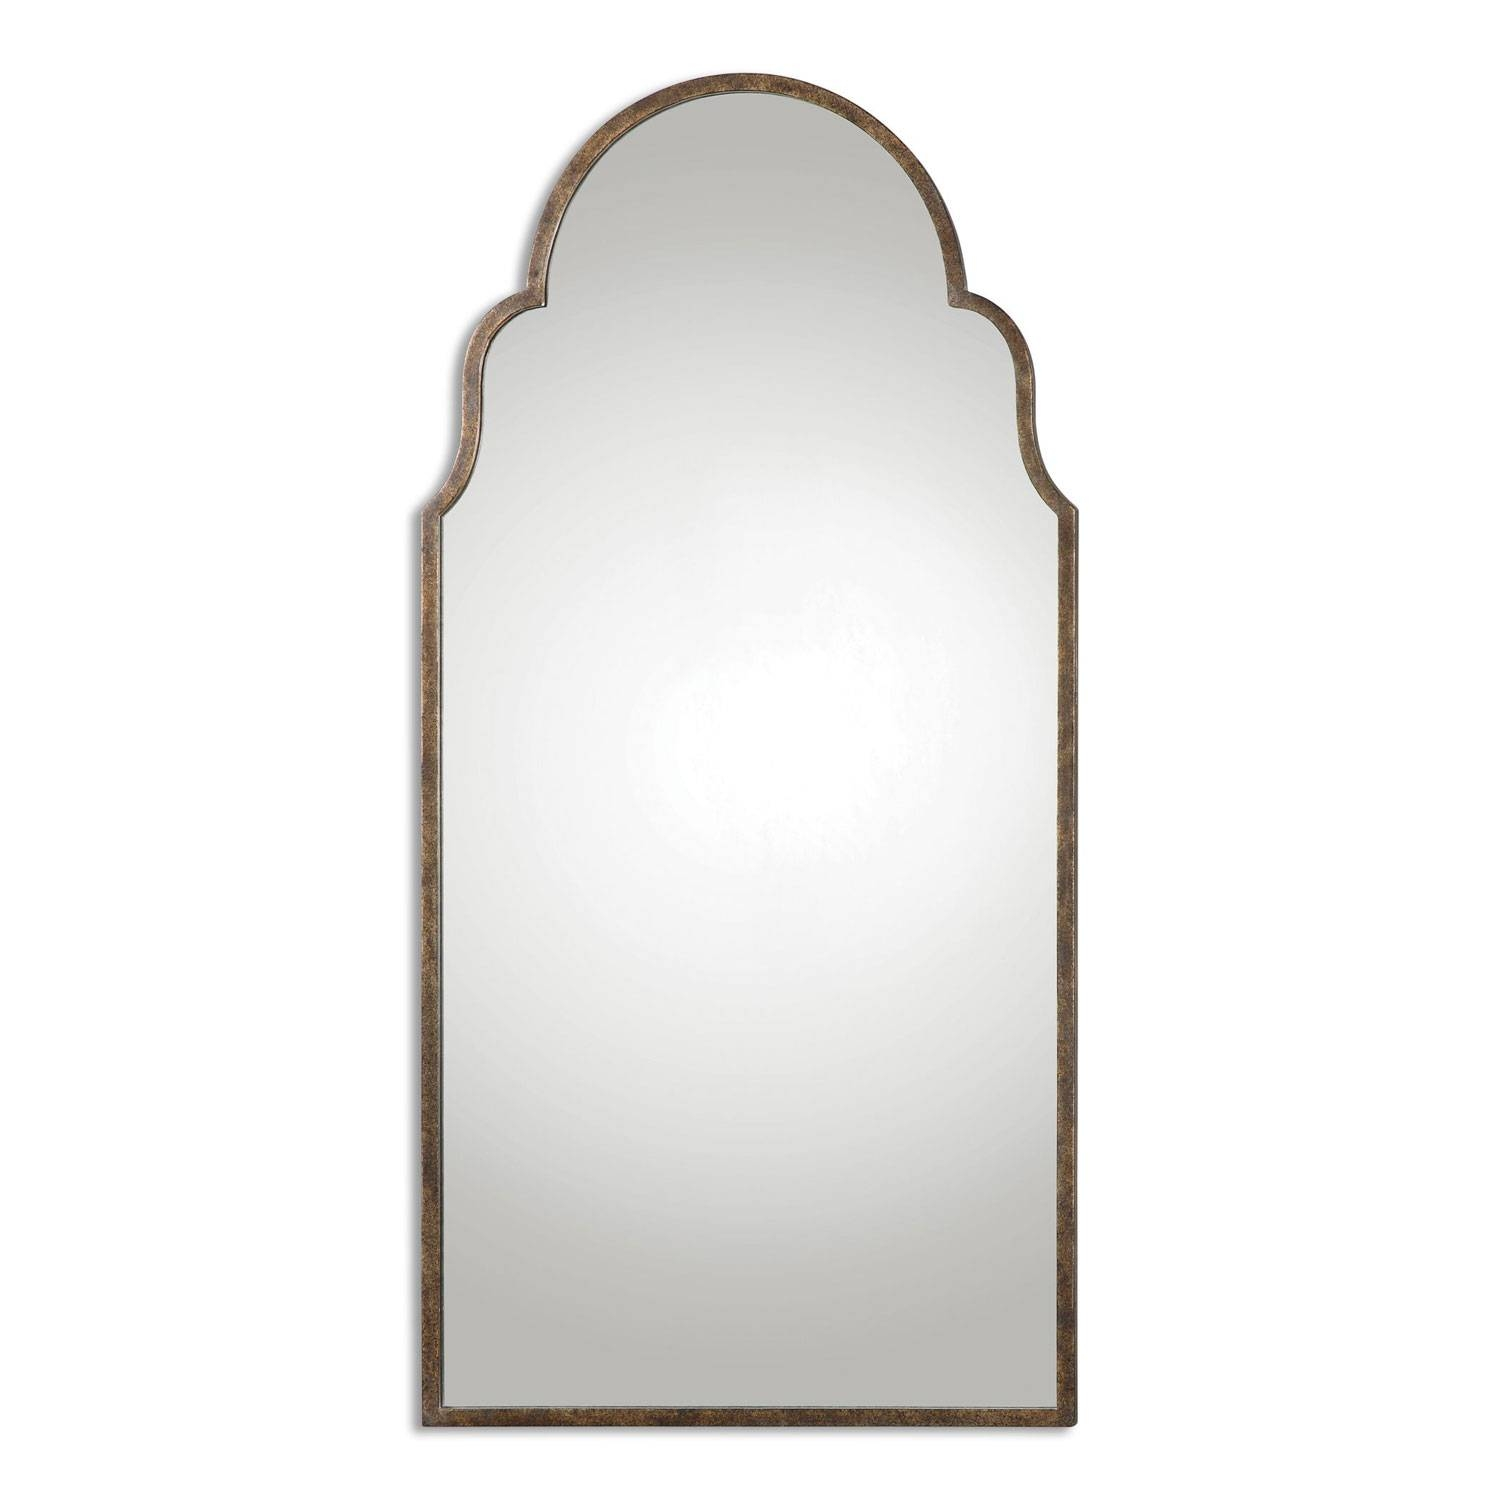 Arched Crowned Mirrors | Bellacor intended for Arched Mirrors (Image 4 of 25)